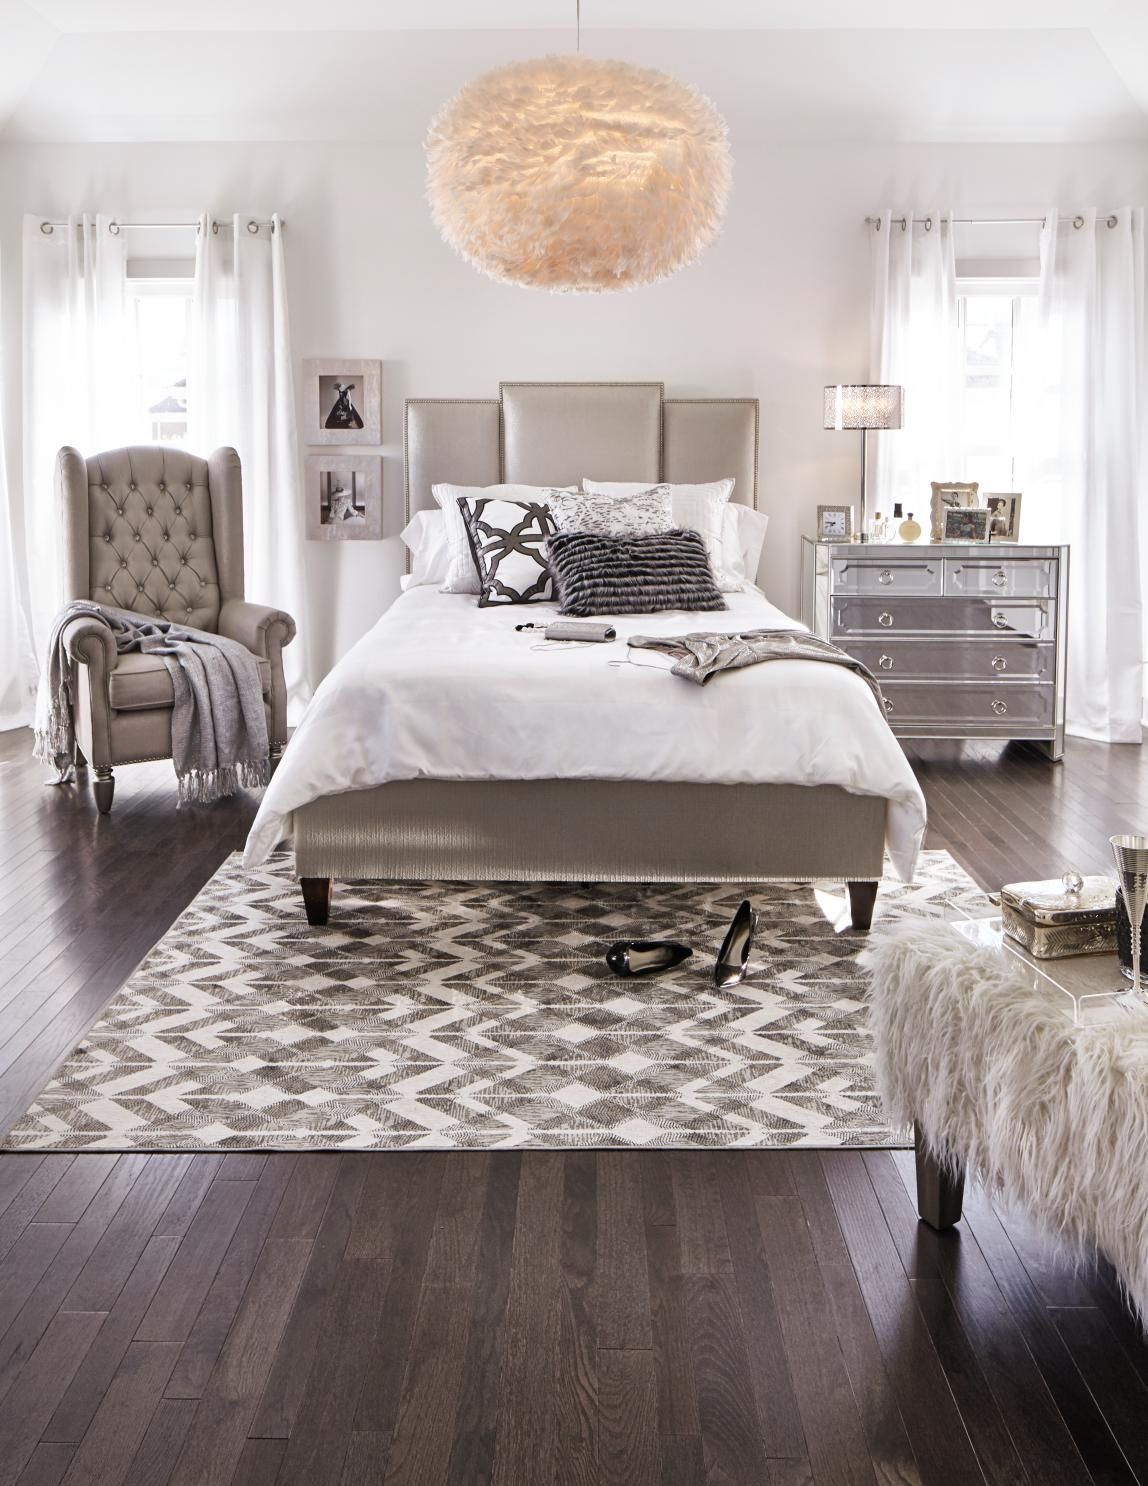 Sparkle up your bedroom with the stunning Delano bedroom